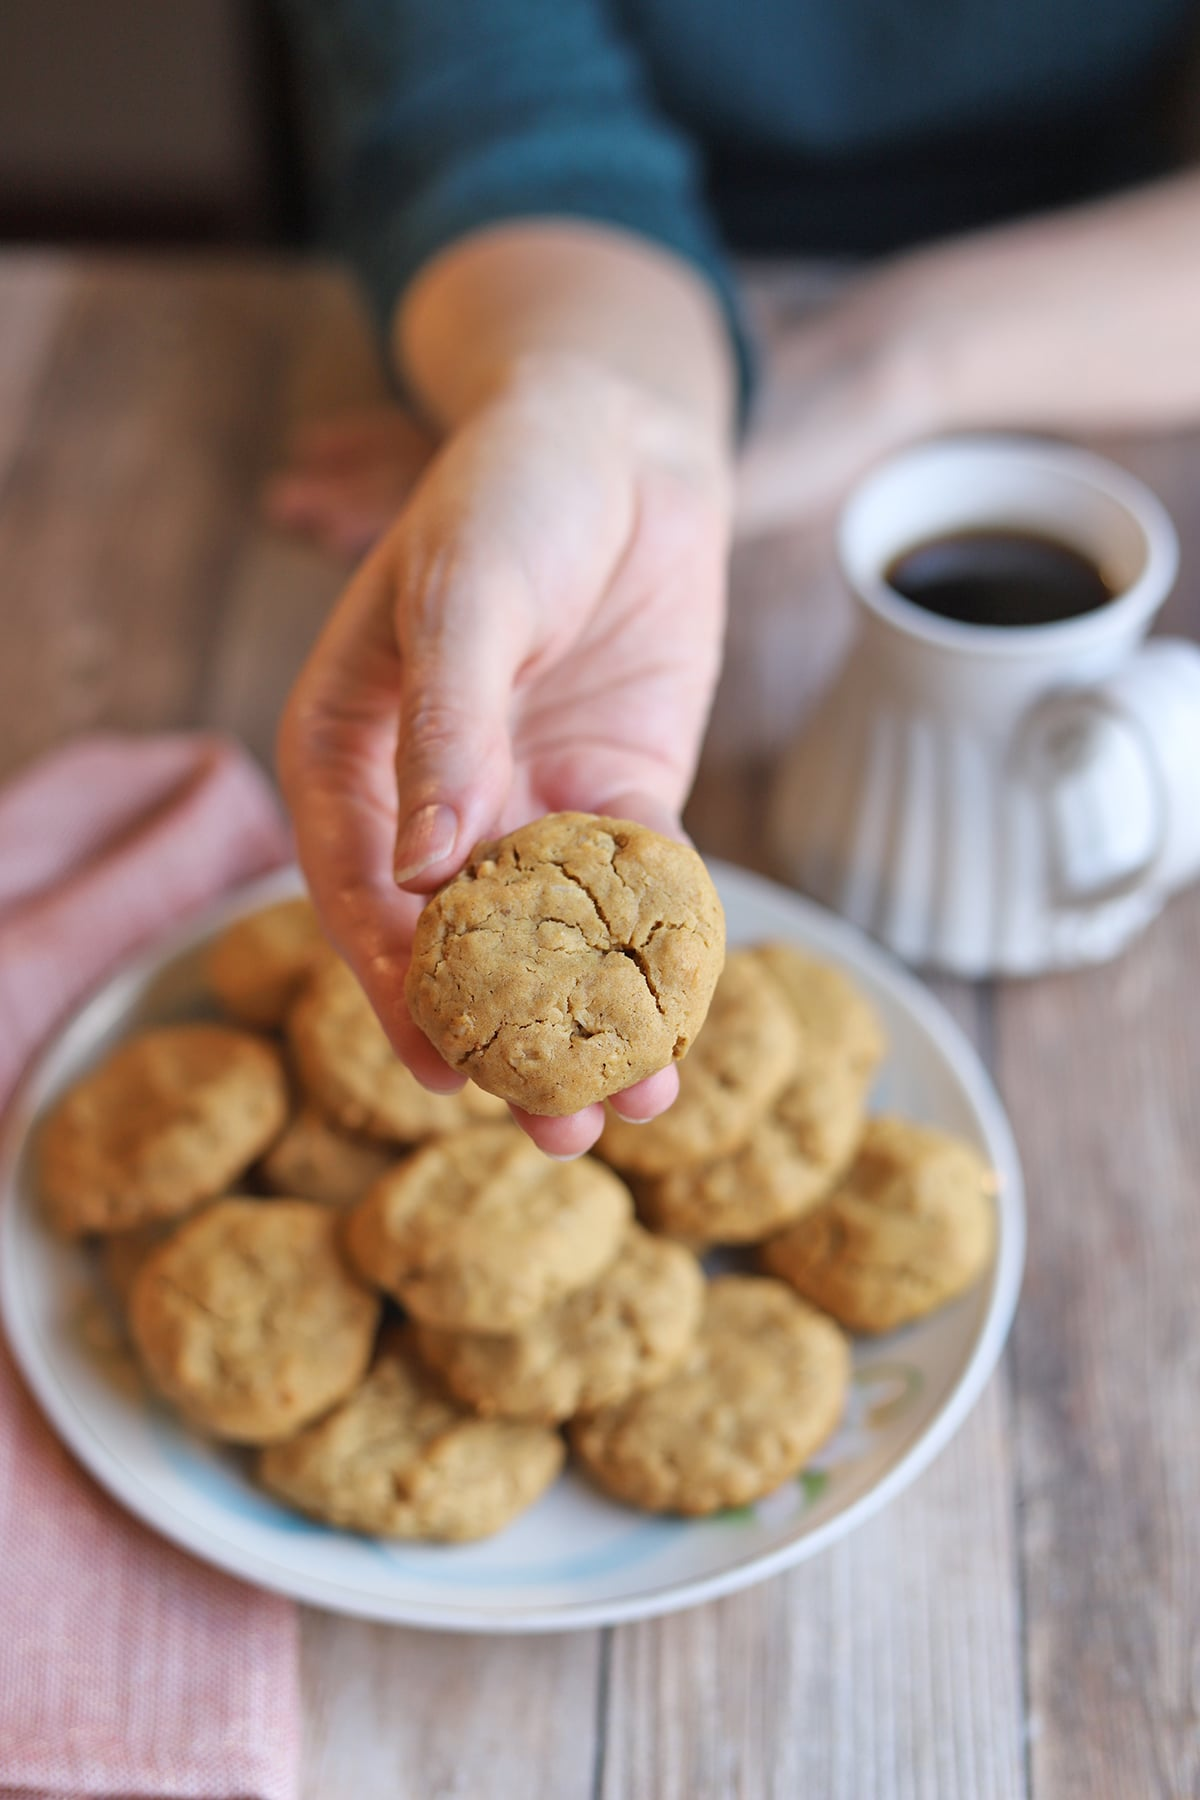 Hand holding cookie over platter & cup of coffee.